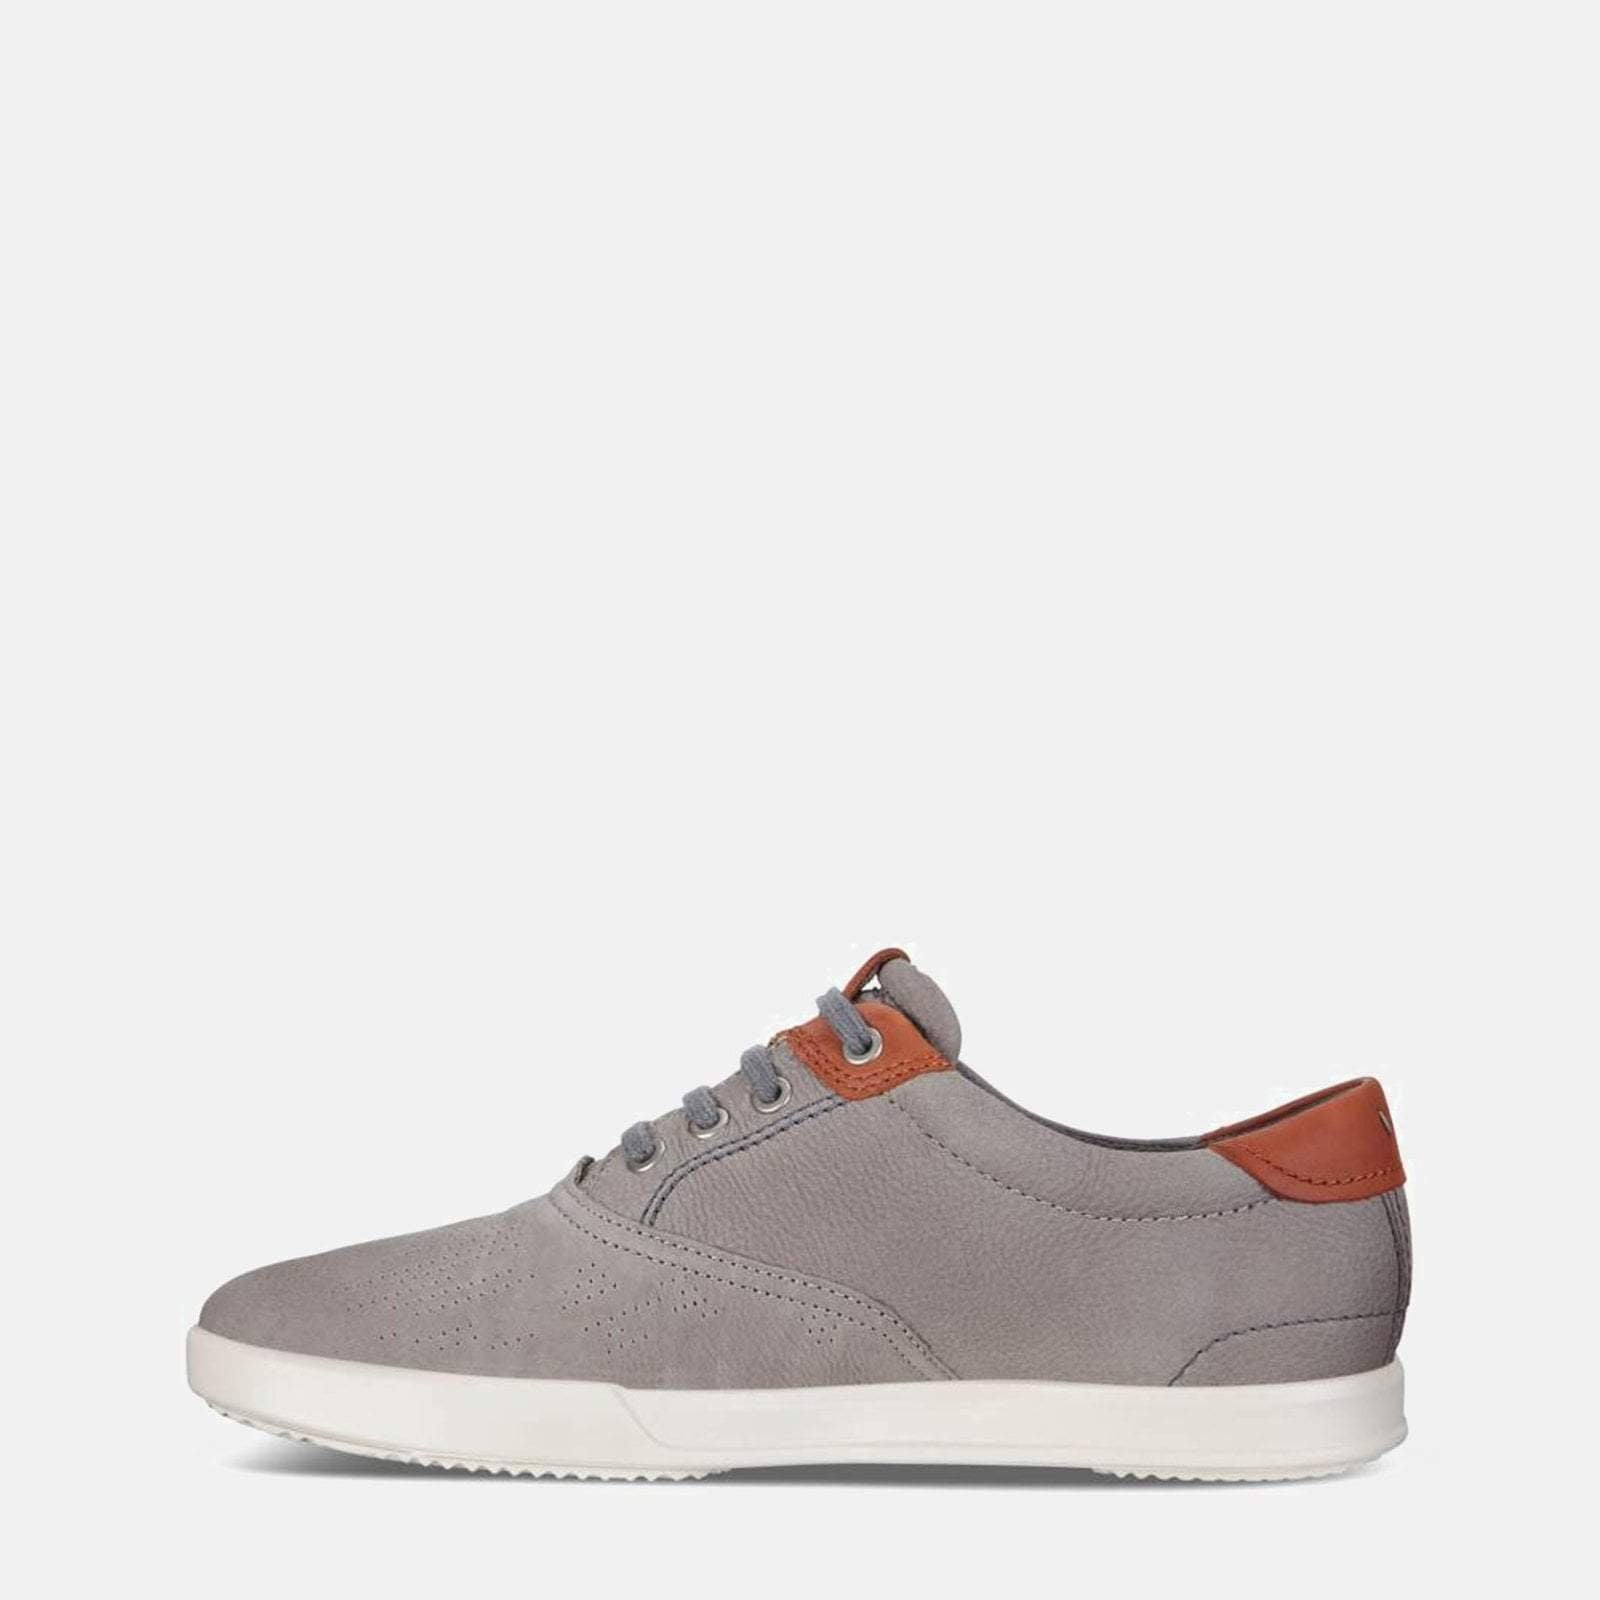 Ecco Footwear Collin 2.0 536224 58267 Warm Grey/Cognac -  Ecco Men's Grey Loafer Trainer Style Leather Shoes